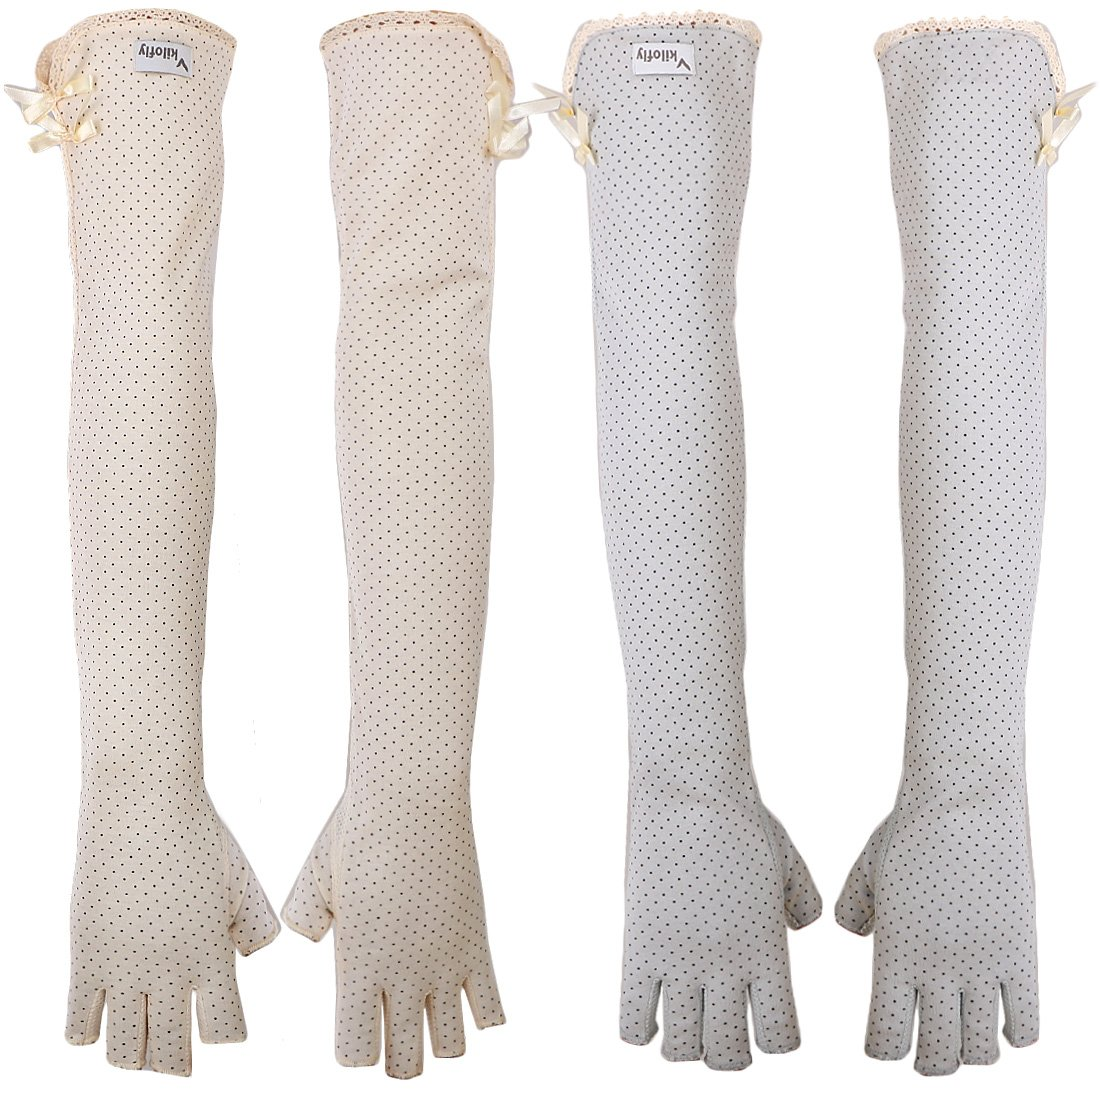 kilofly Women's Long Anti-UV Breathable Arm Sun Block Driving Gloves, 2 Pairs